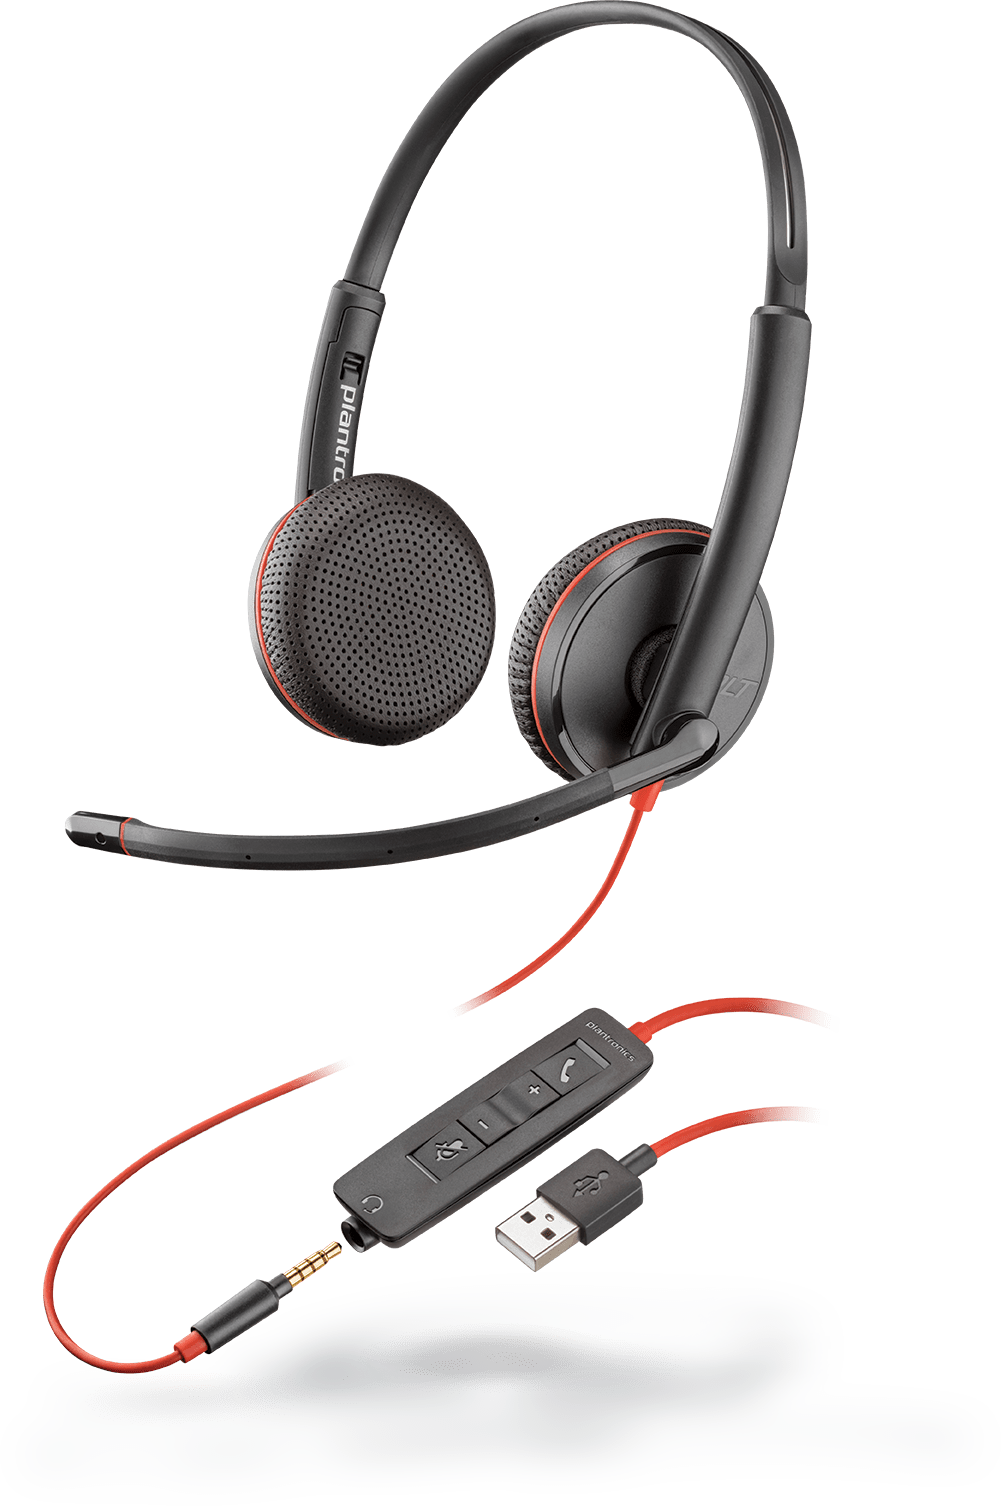 hight resolution of blackwire 3200 series offers professional sound in a durable portable and comfortable design making them a no compromise budget friendly solution for